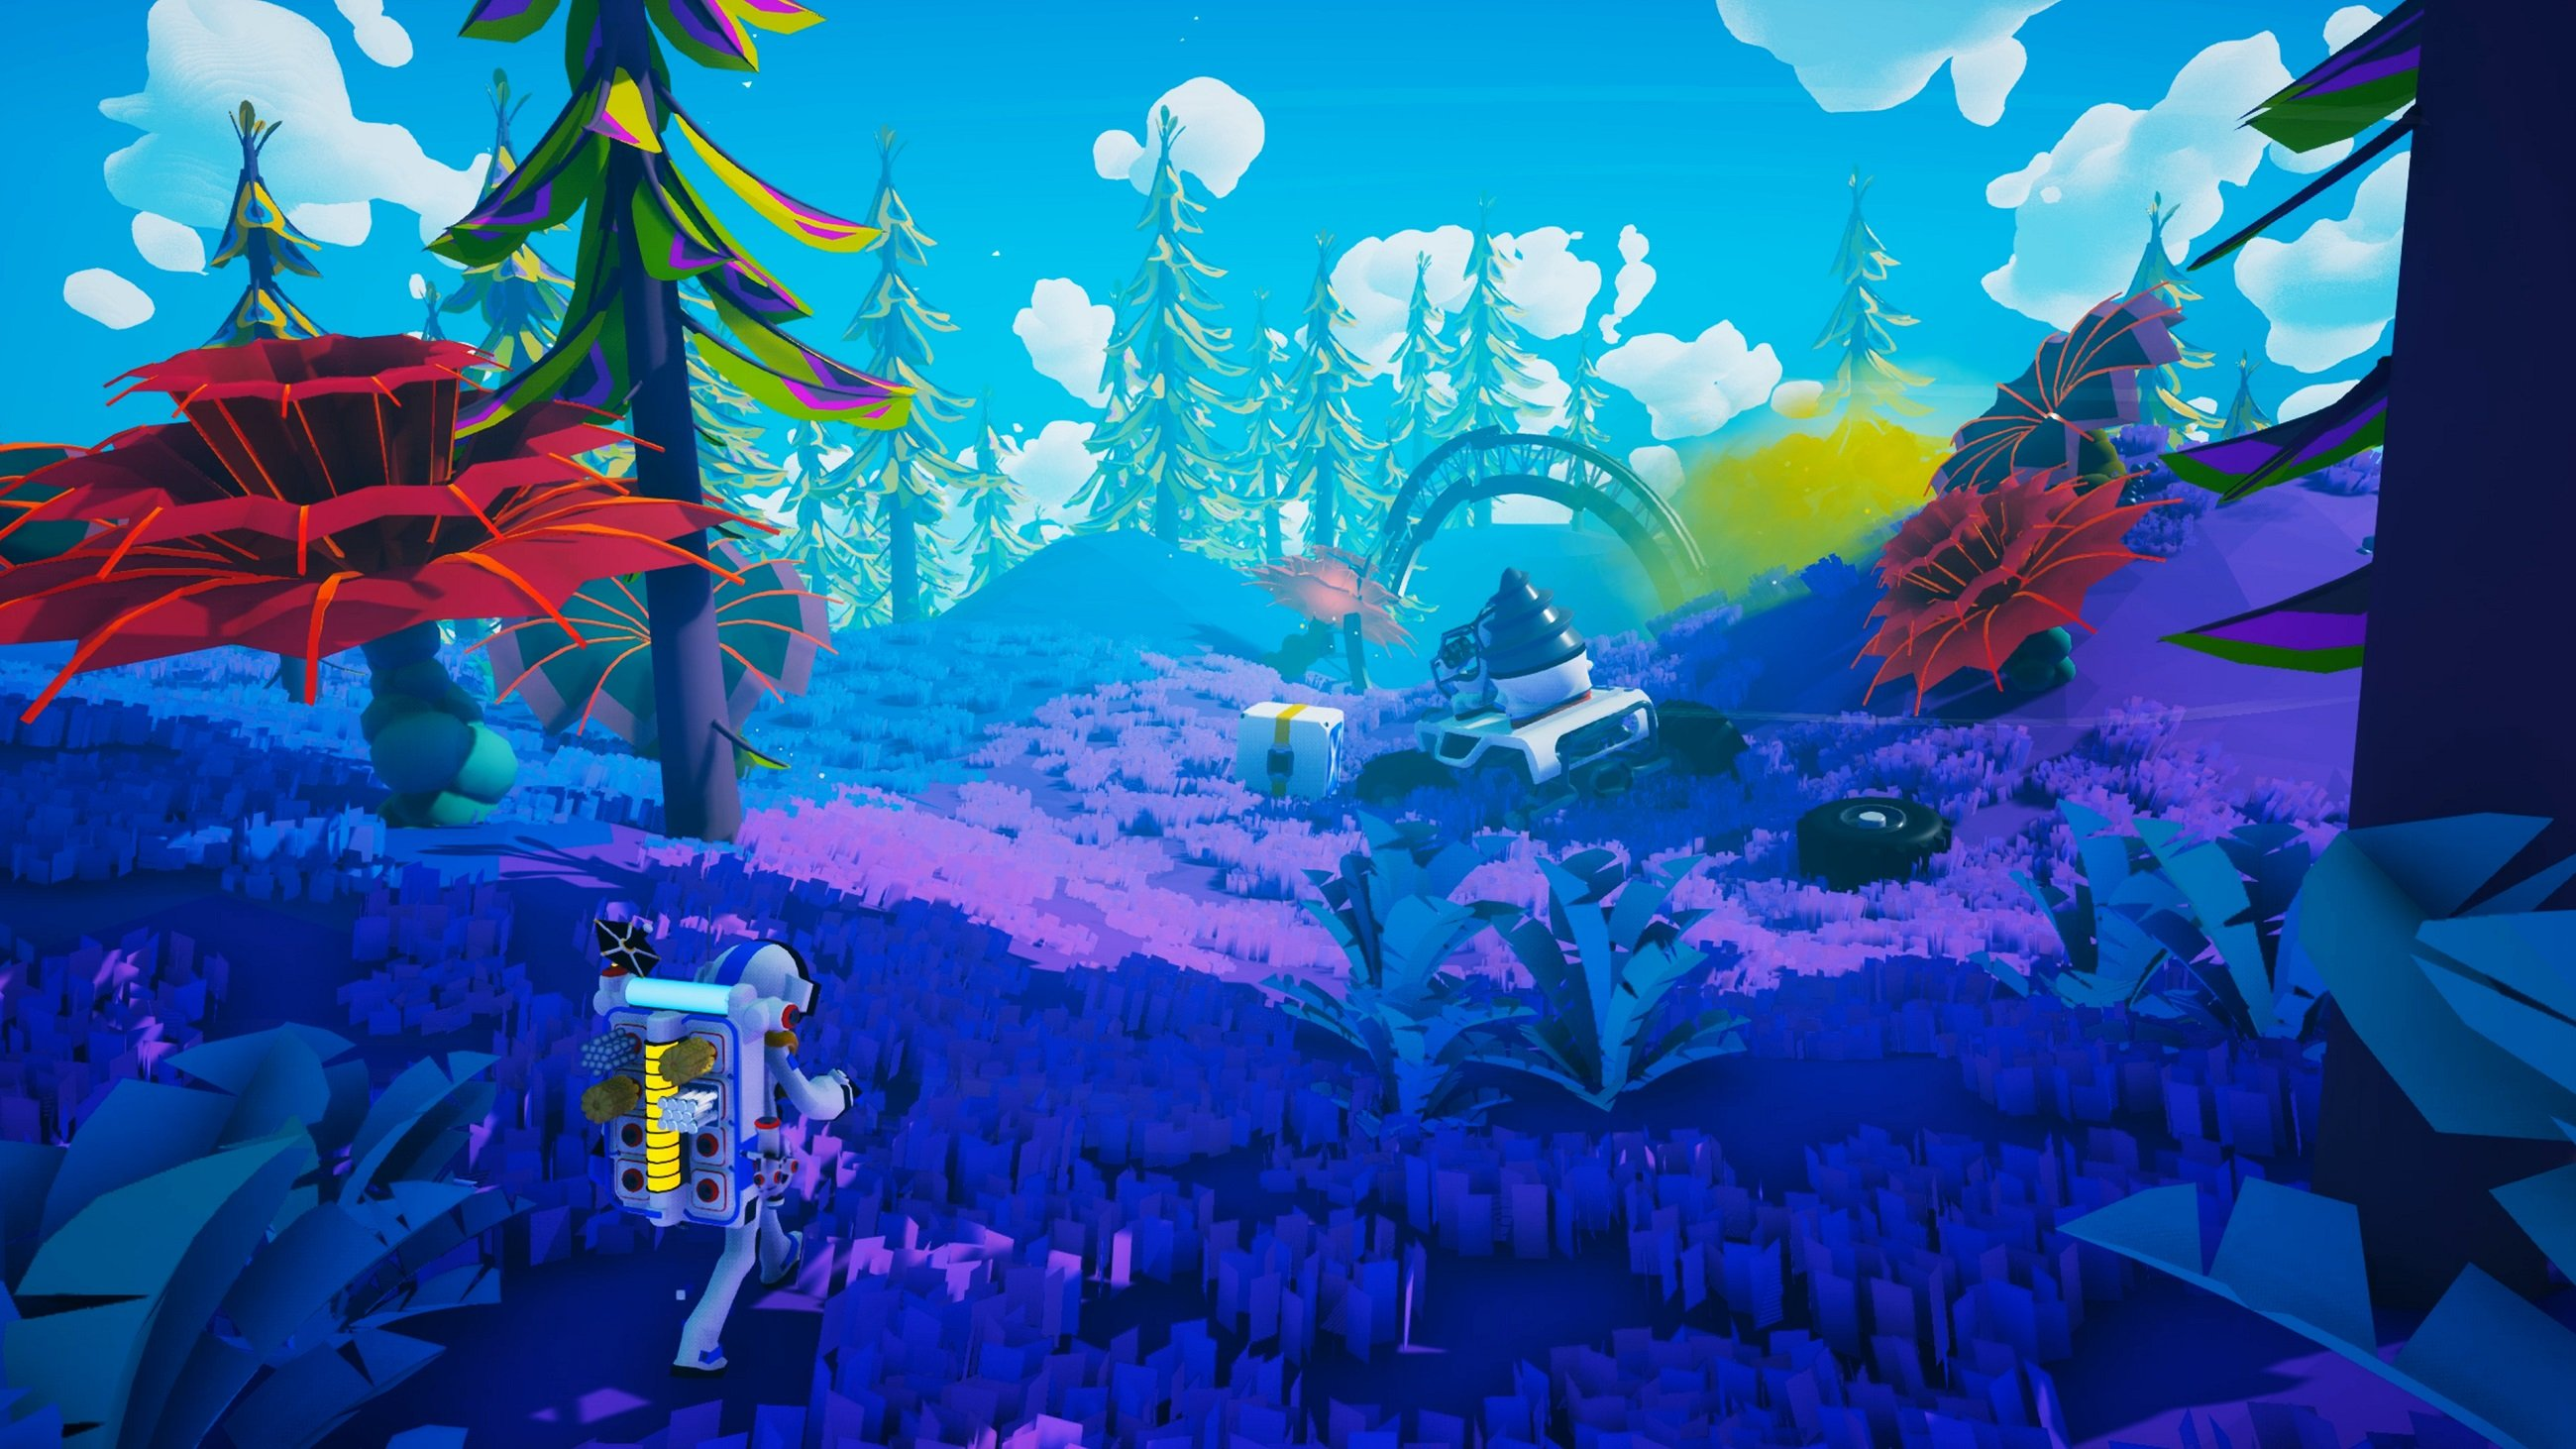 Astroneer lets you explore colorful planets and build whatever you want, including cool bases and vehicles.